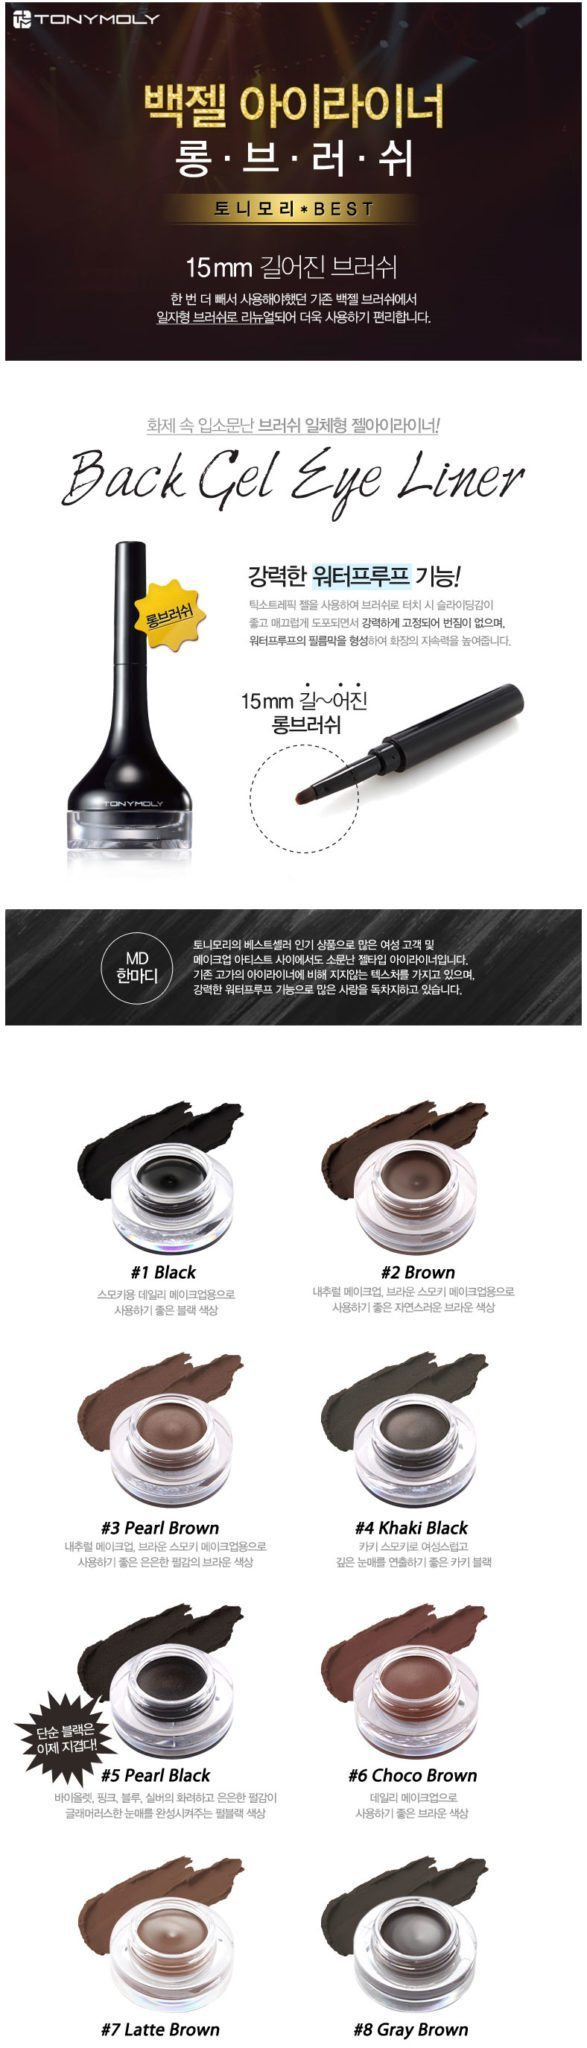 TONYMOLY Black Gel Eye Liner 4g - RM 32.90 [8 color]